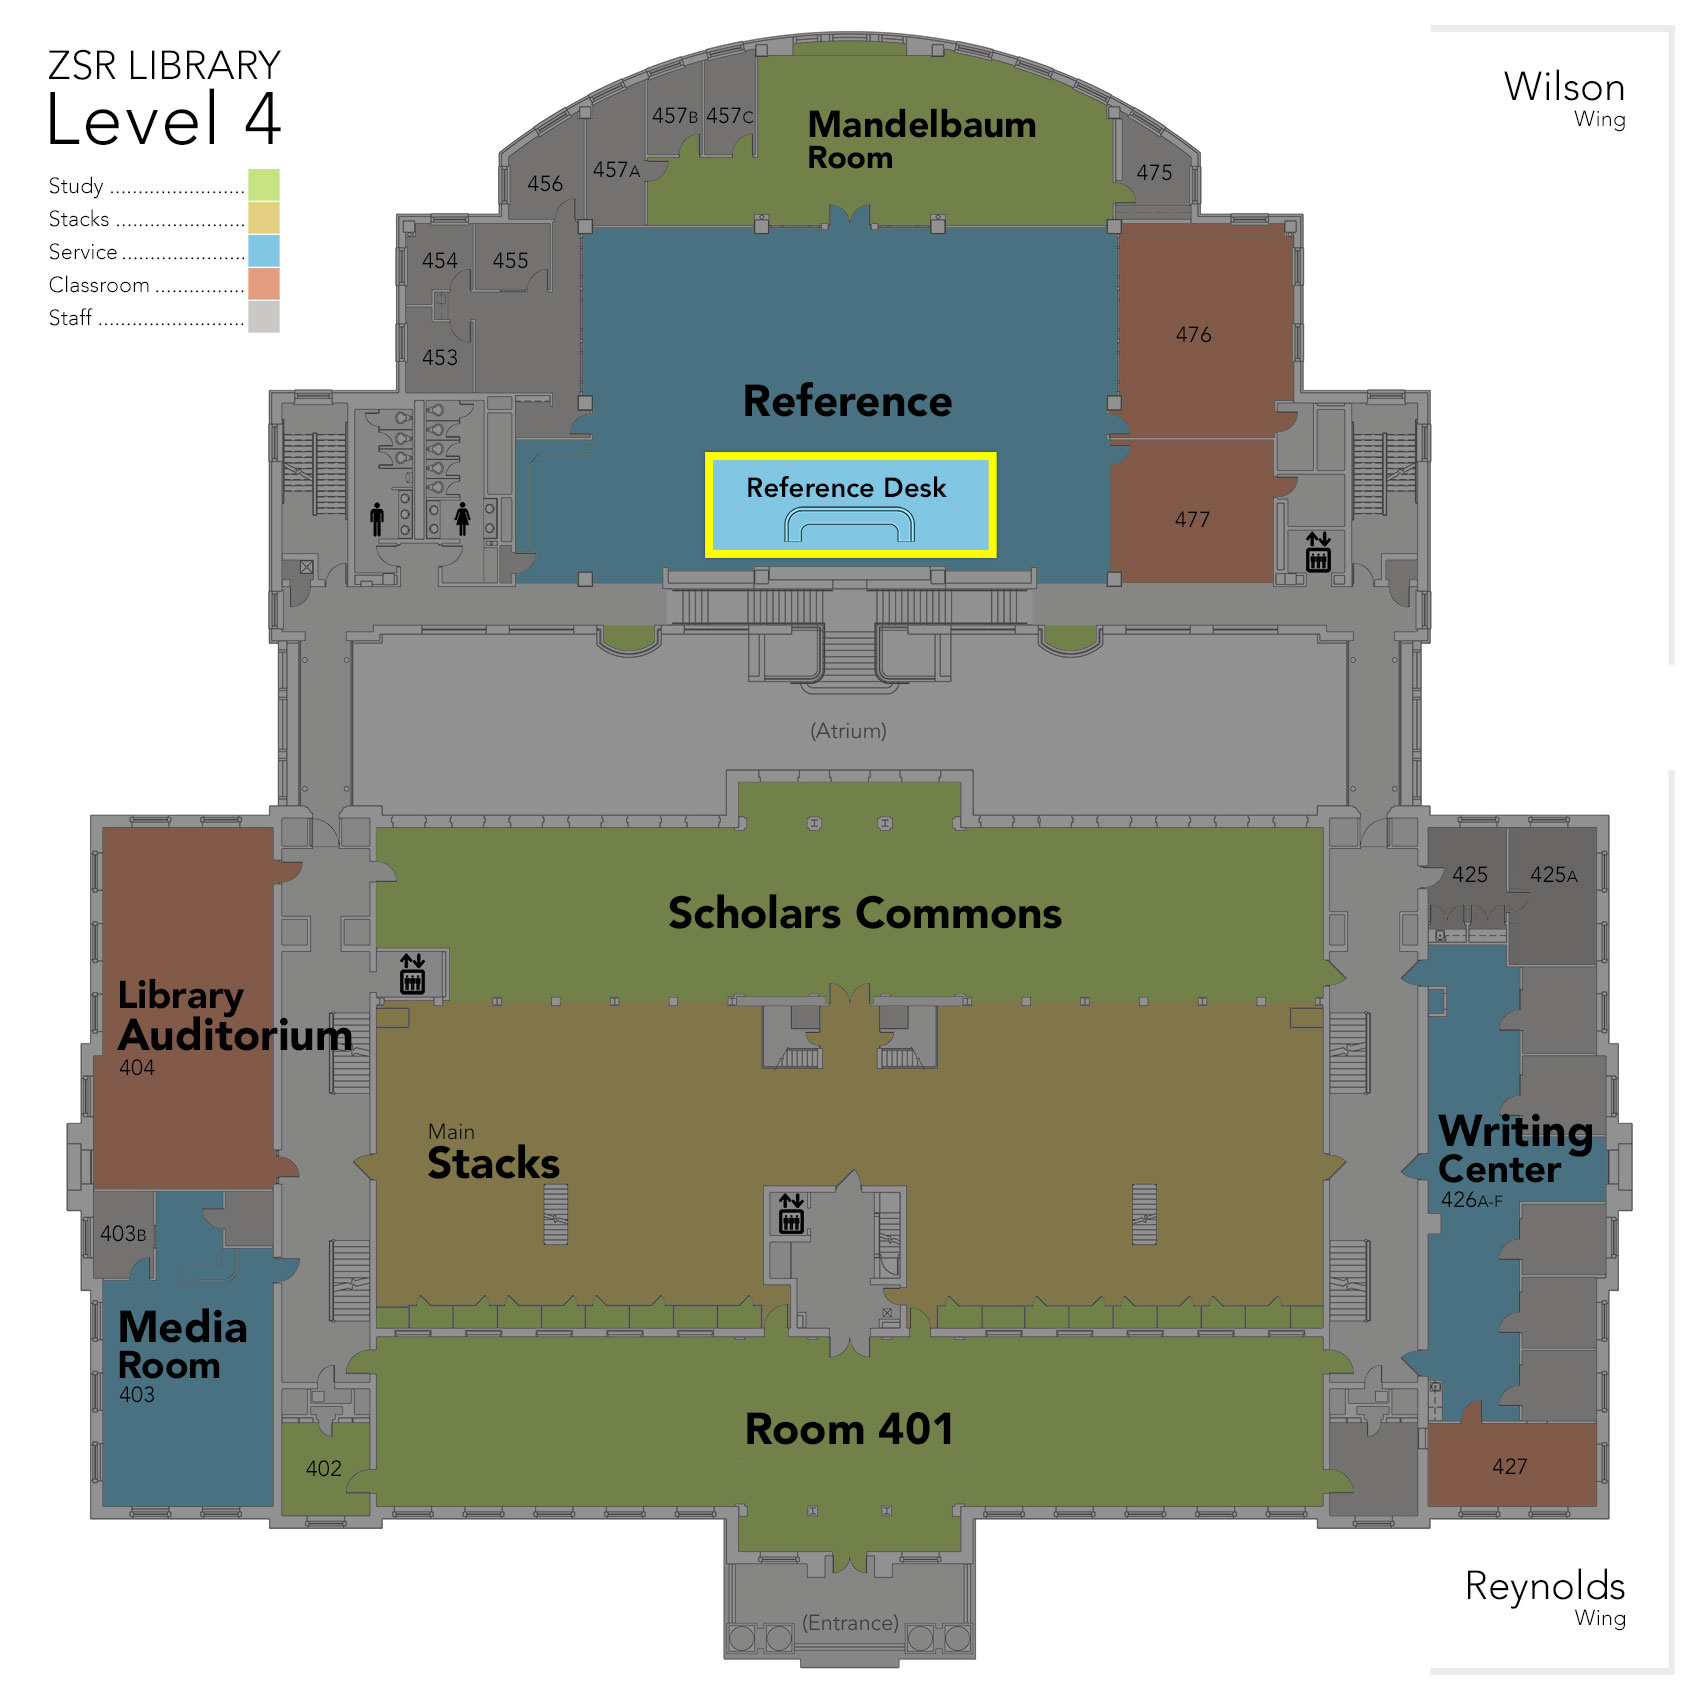 Level 4 Reference Desk map